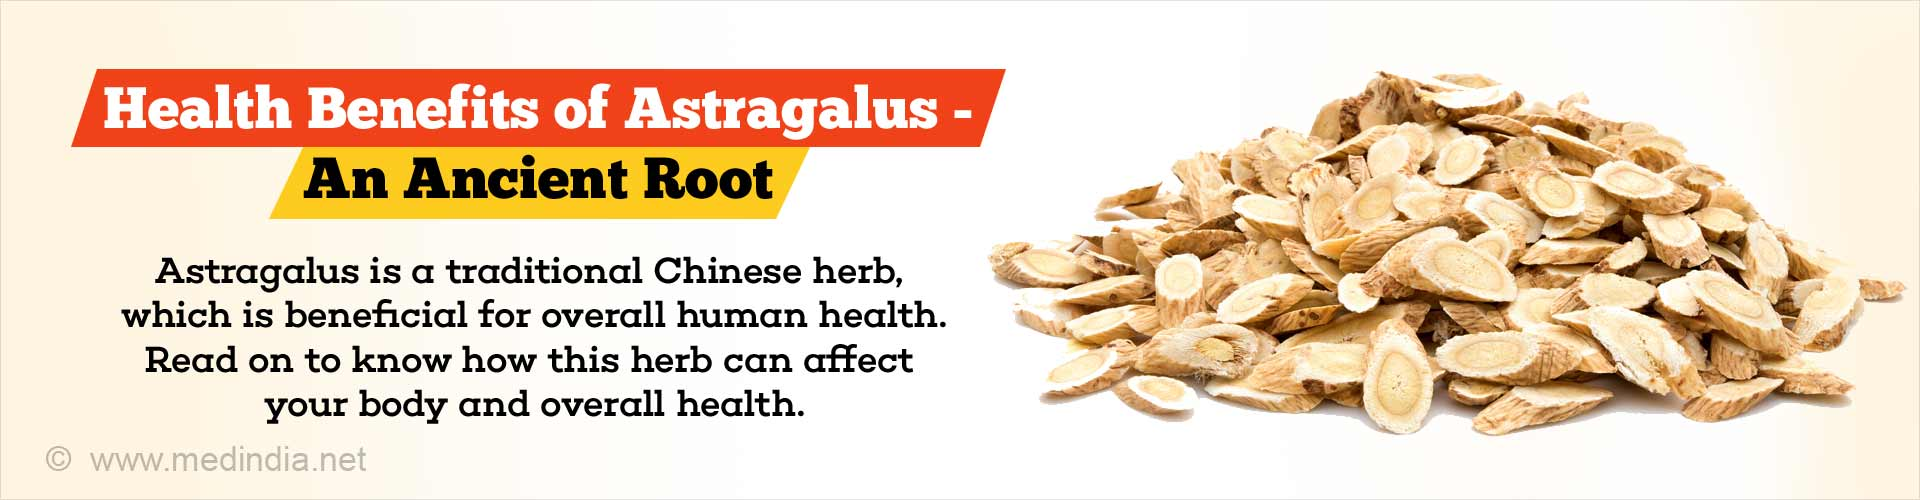 Health Benefits of Astragalus - An Ancient Root